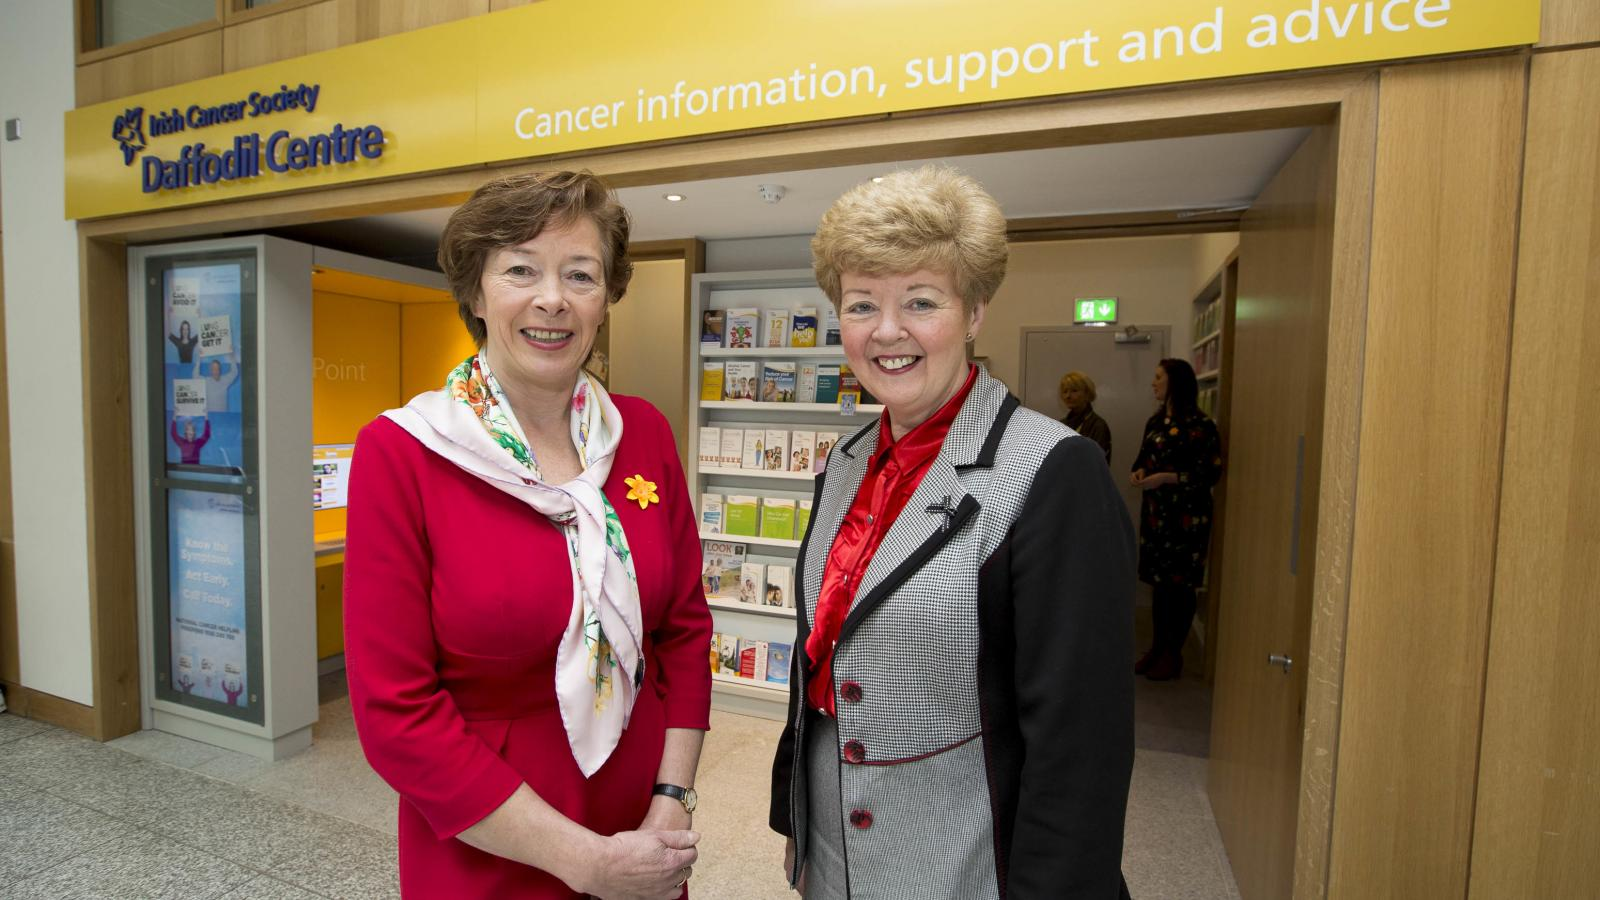 Cancer nurse and volunteer in front of a Daffodil Centre